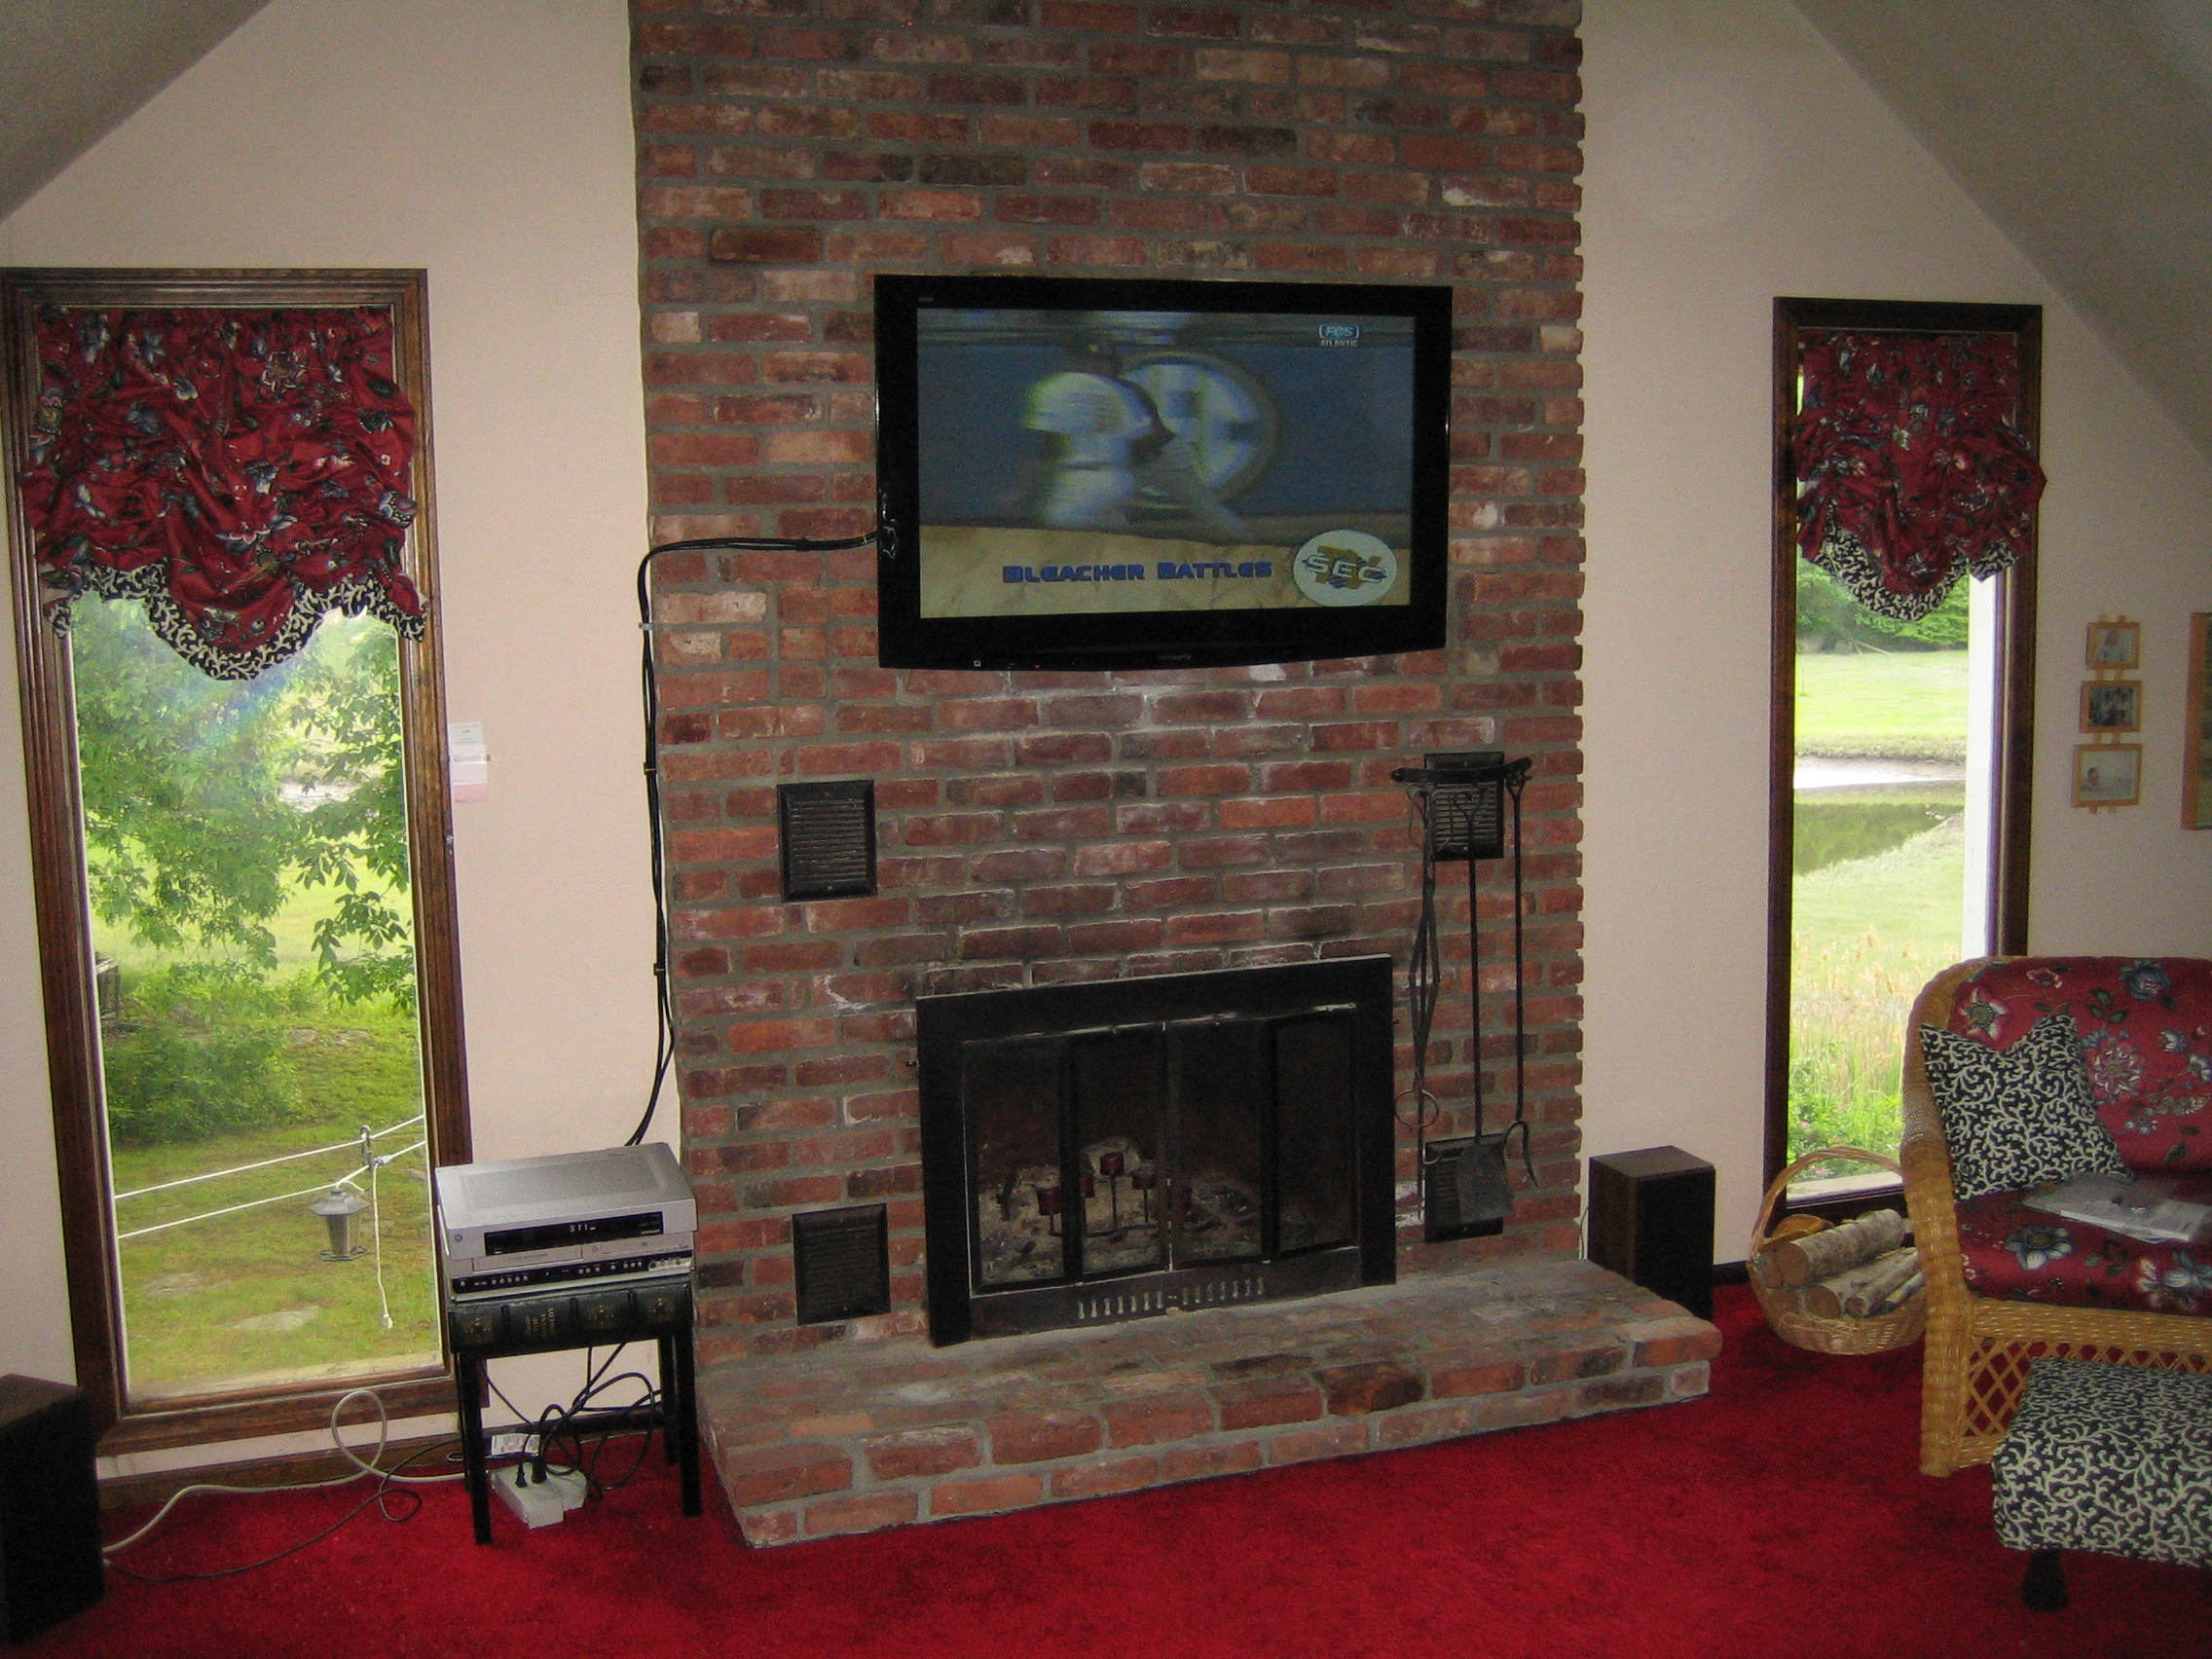 Best ideas about Mounting Tv Above Fireplace . Save or Pin Durham CT mount tv above fireplace Now.